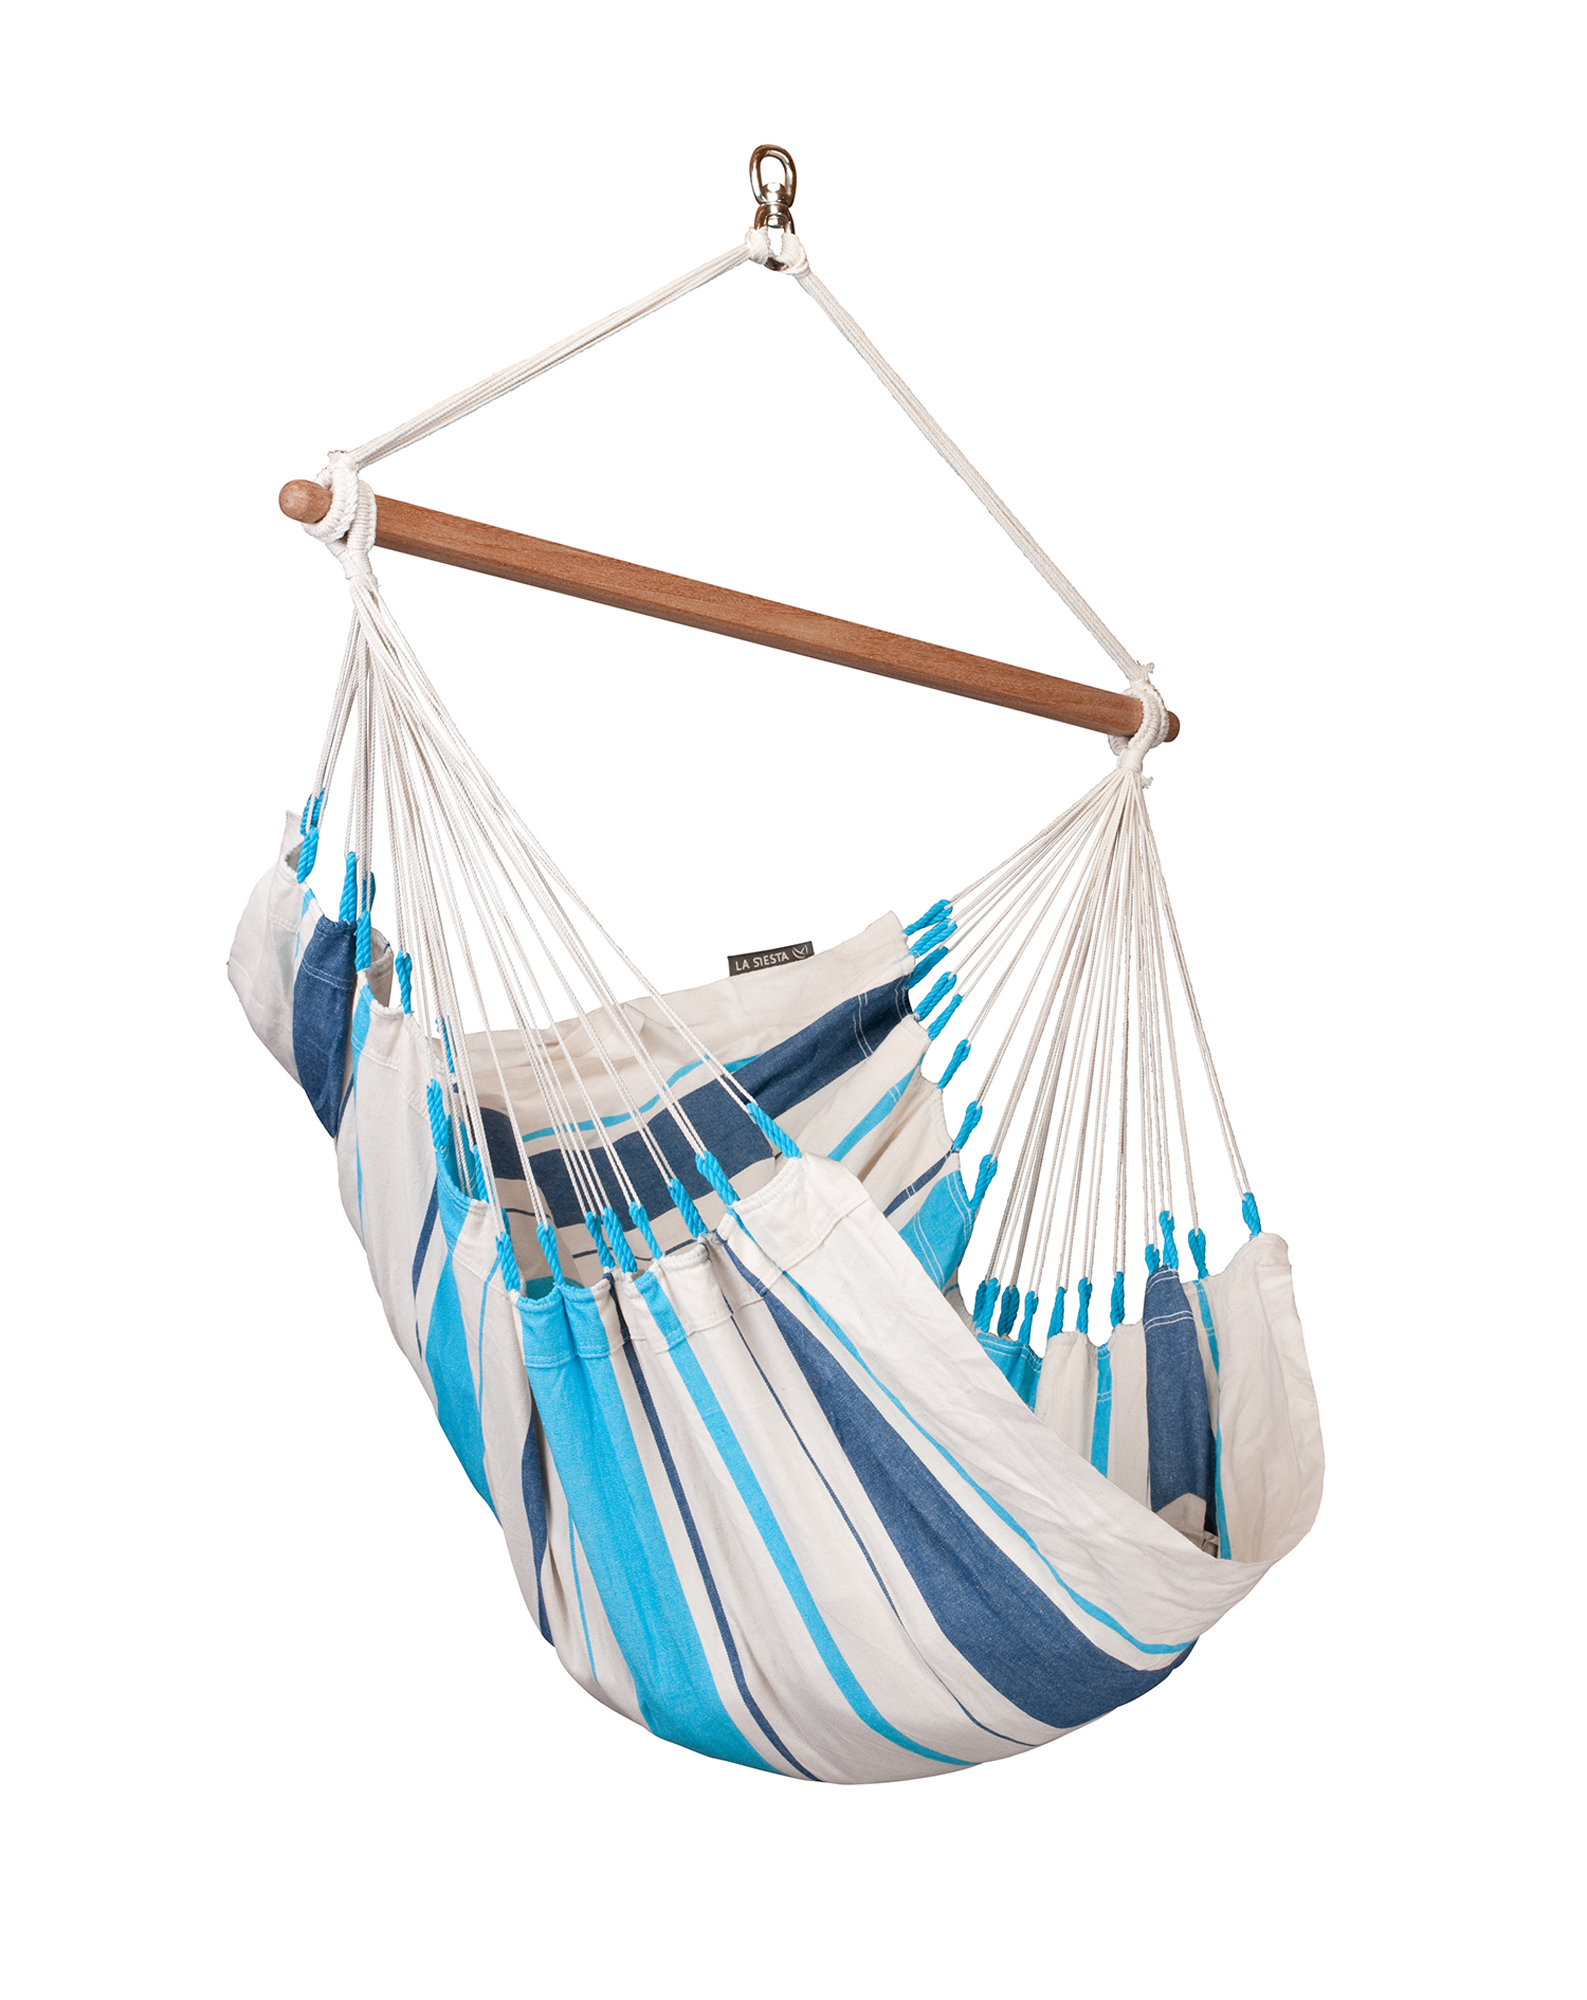 Hammock Chairs